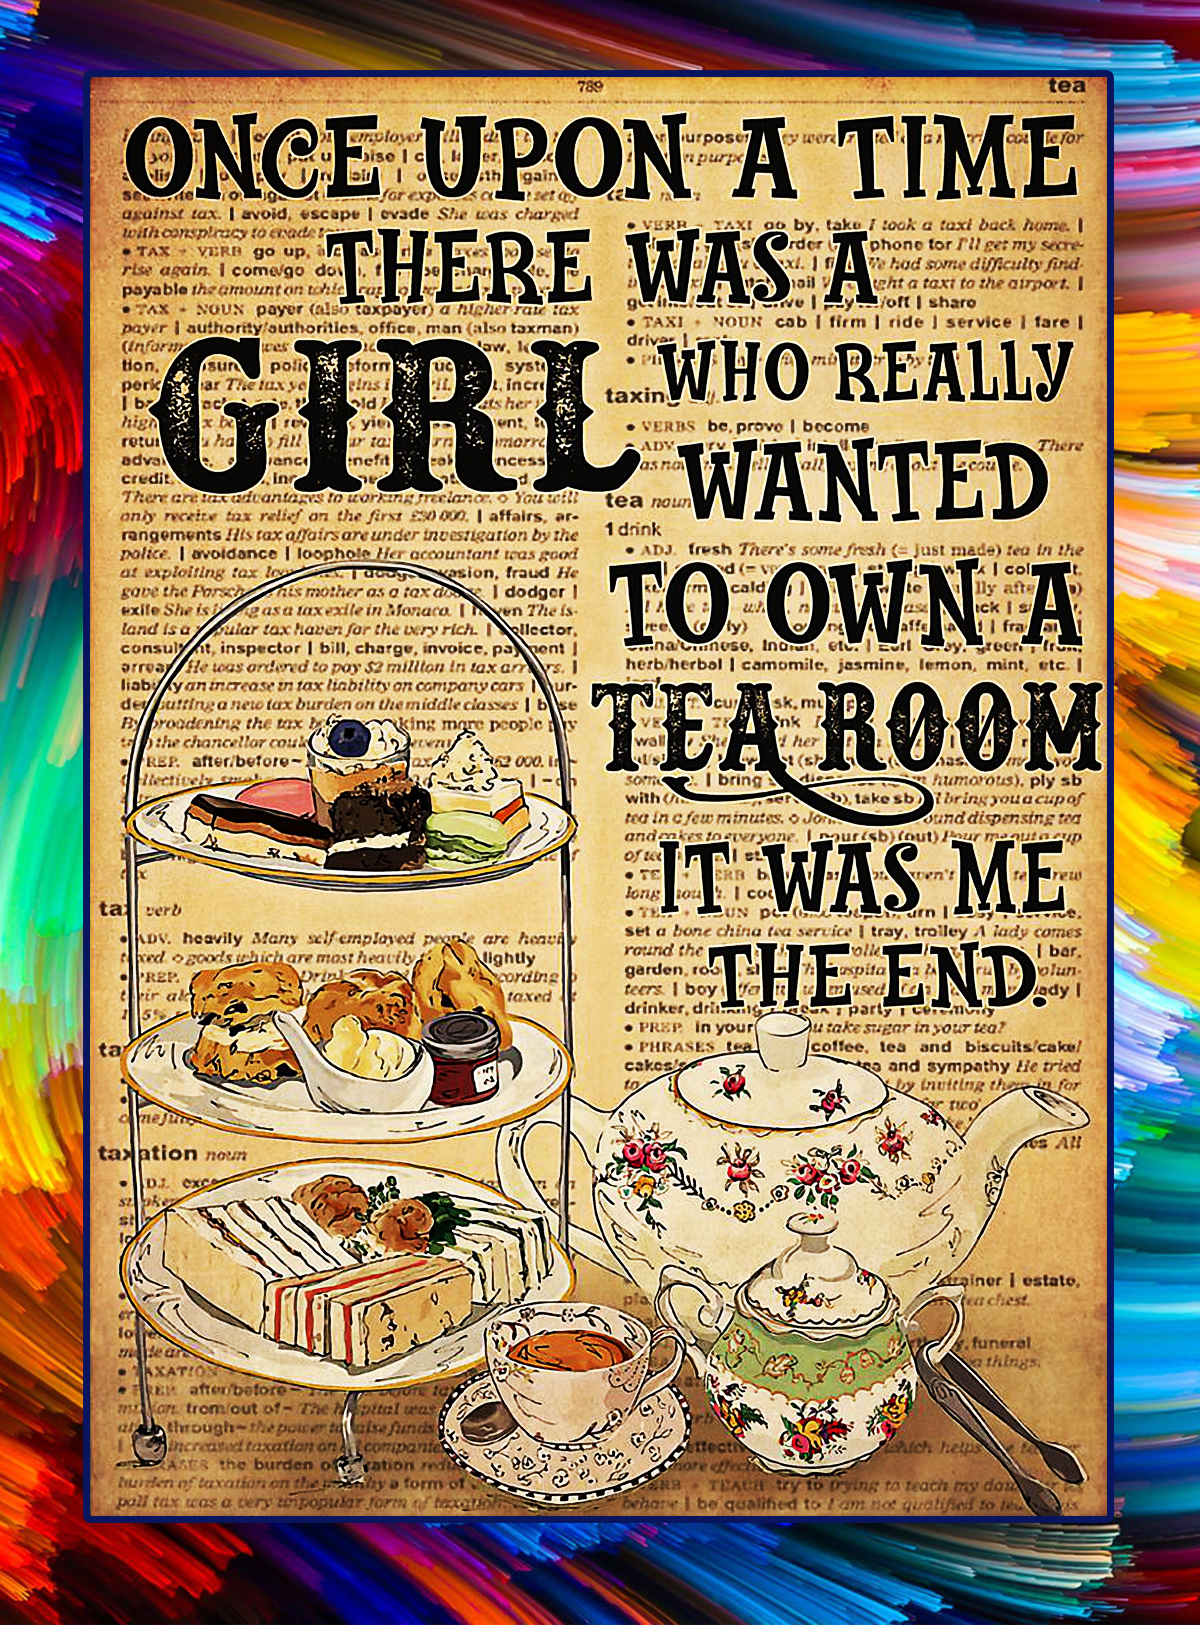 Once upon a time there was a girl who really wanted to own a tea room poster